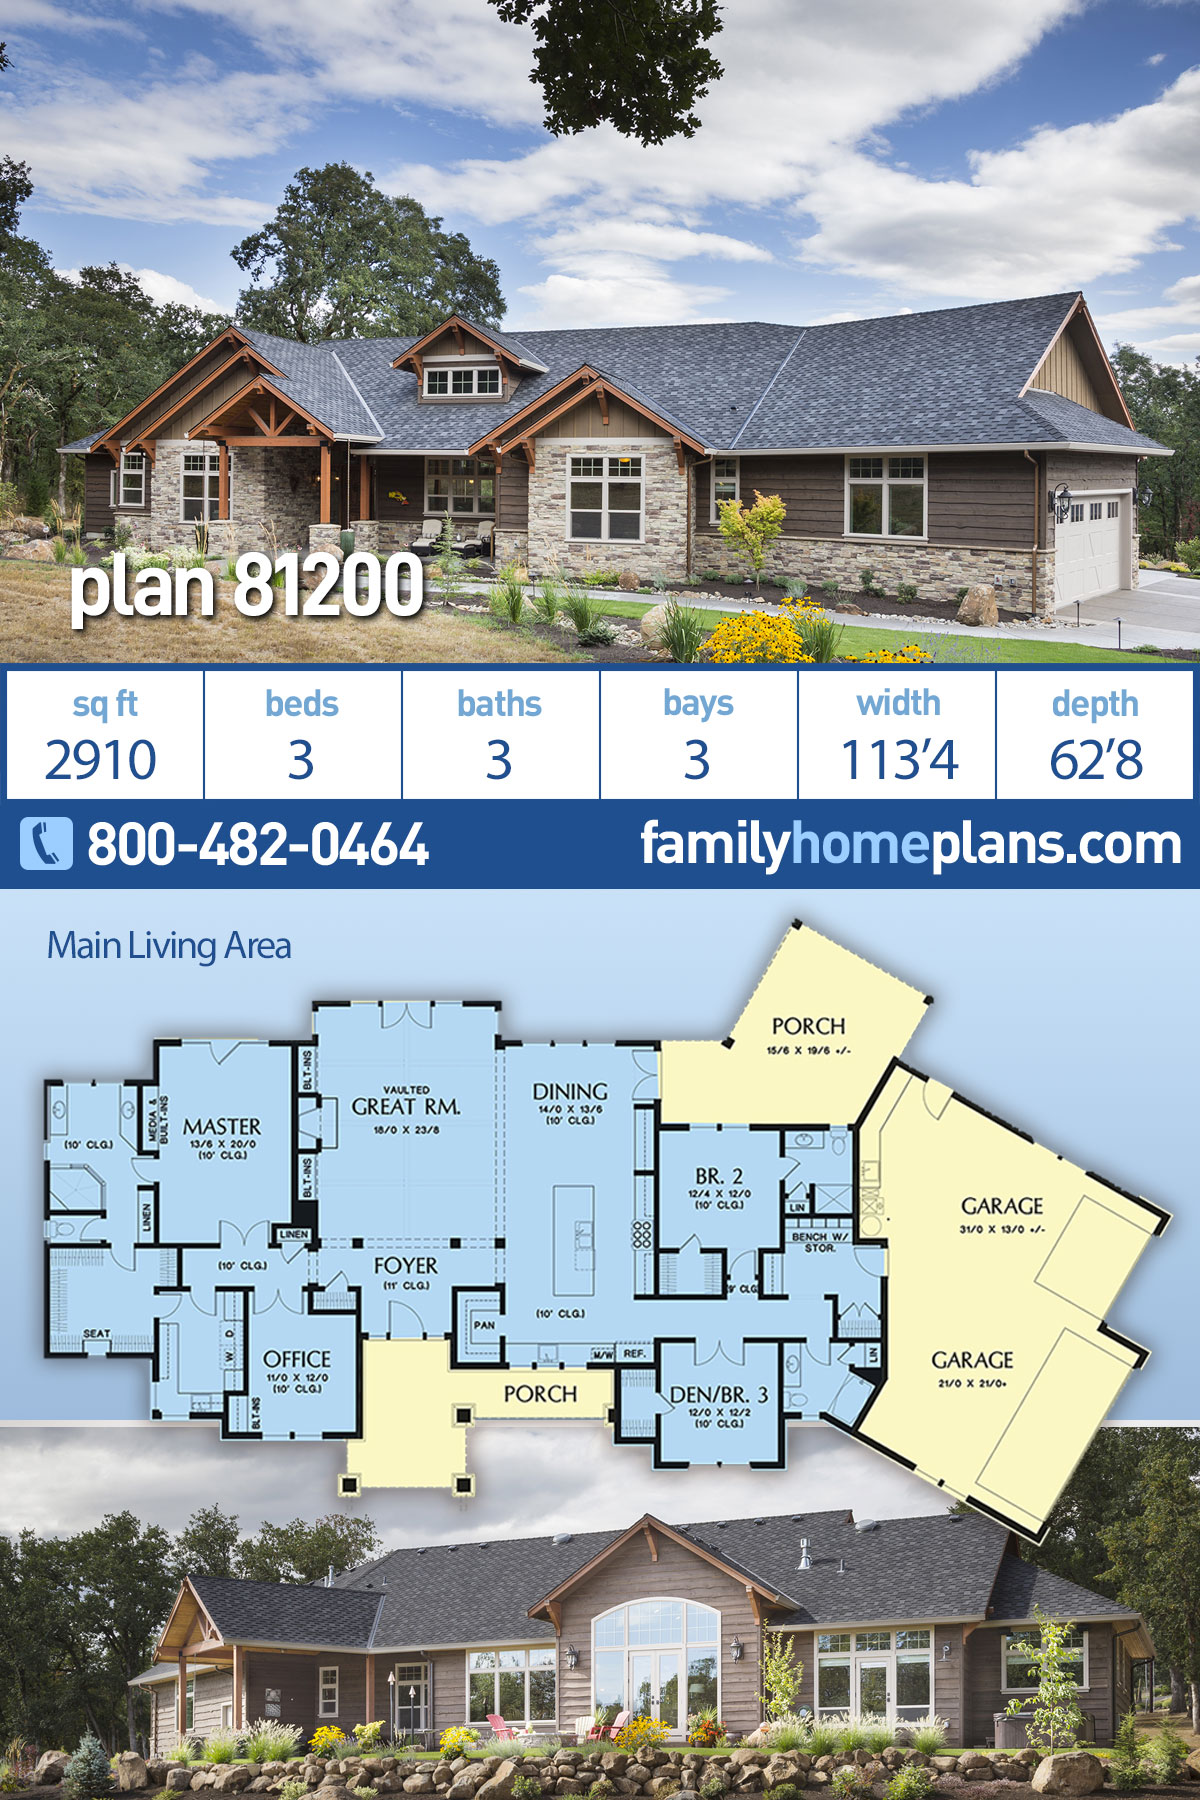 Craftsman, Ranch House Plan 81200 with 3 Beds, 3 Baths, 3 Car Garage